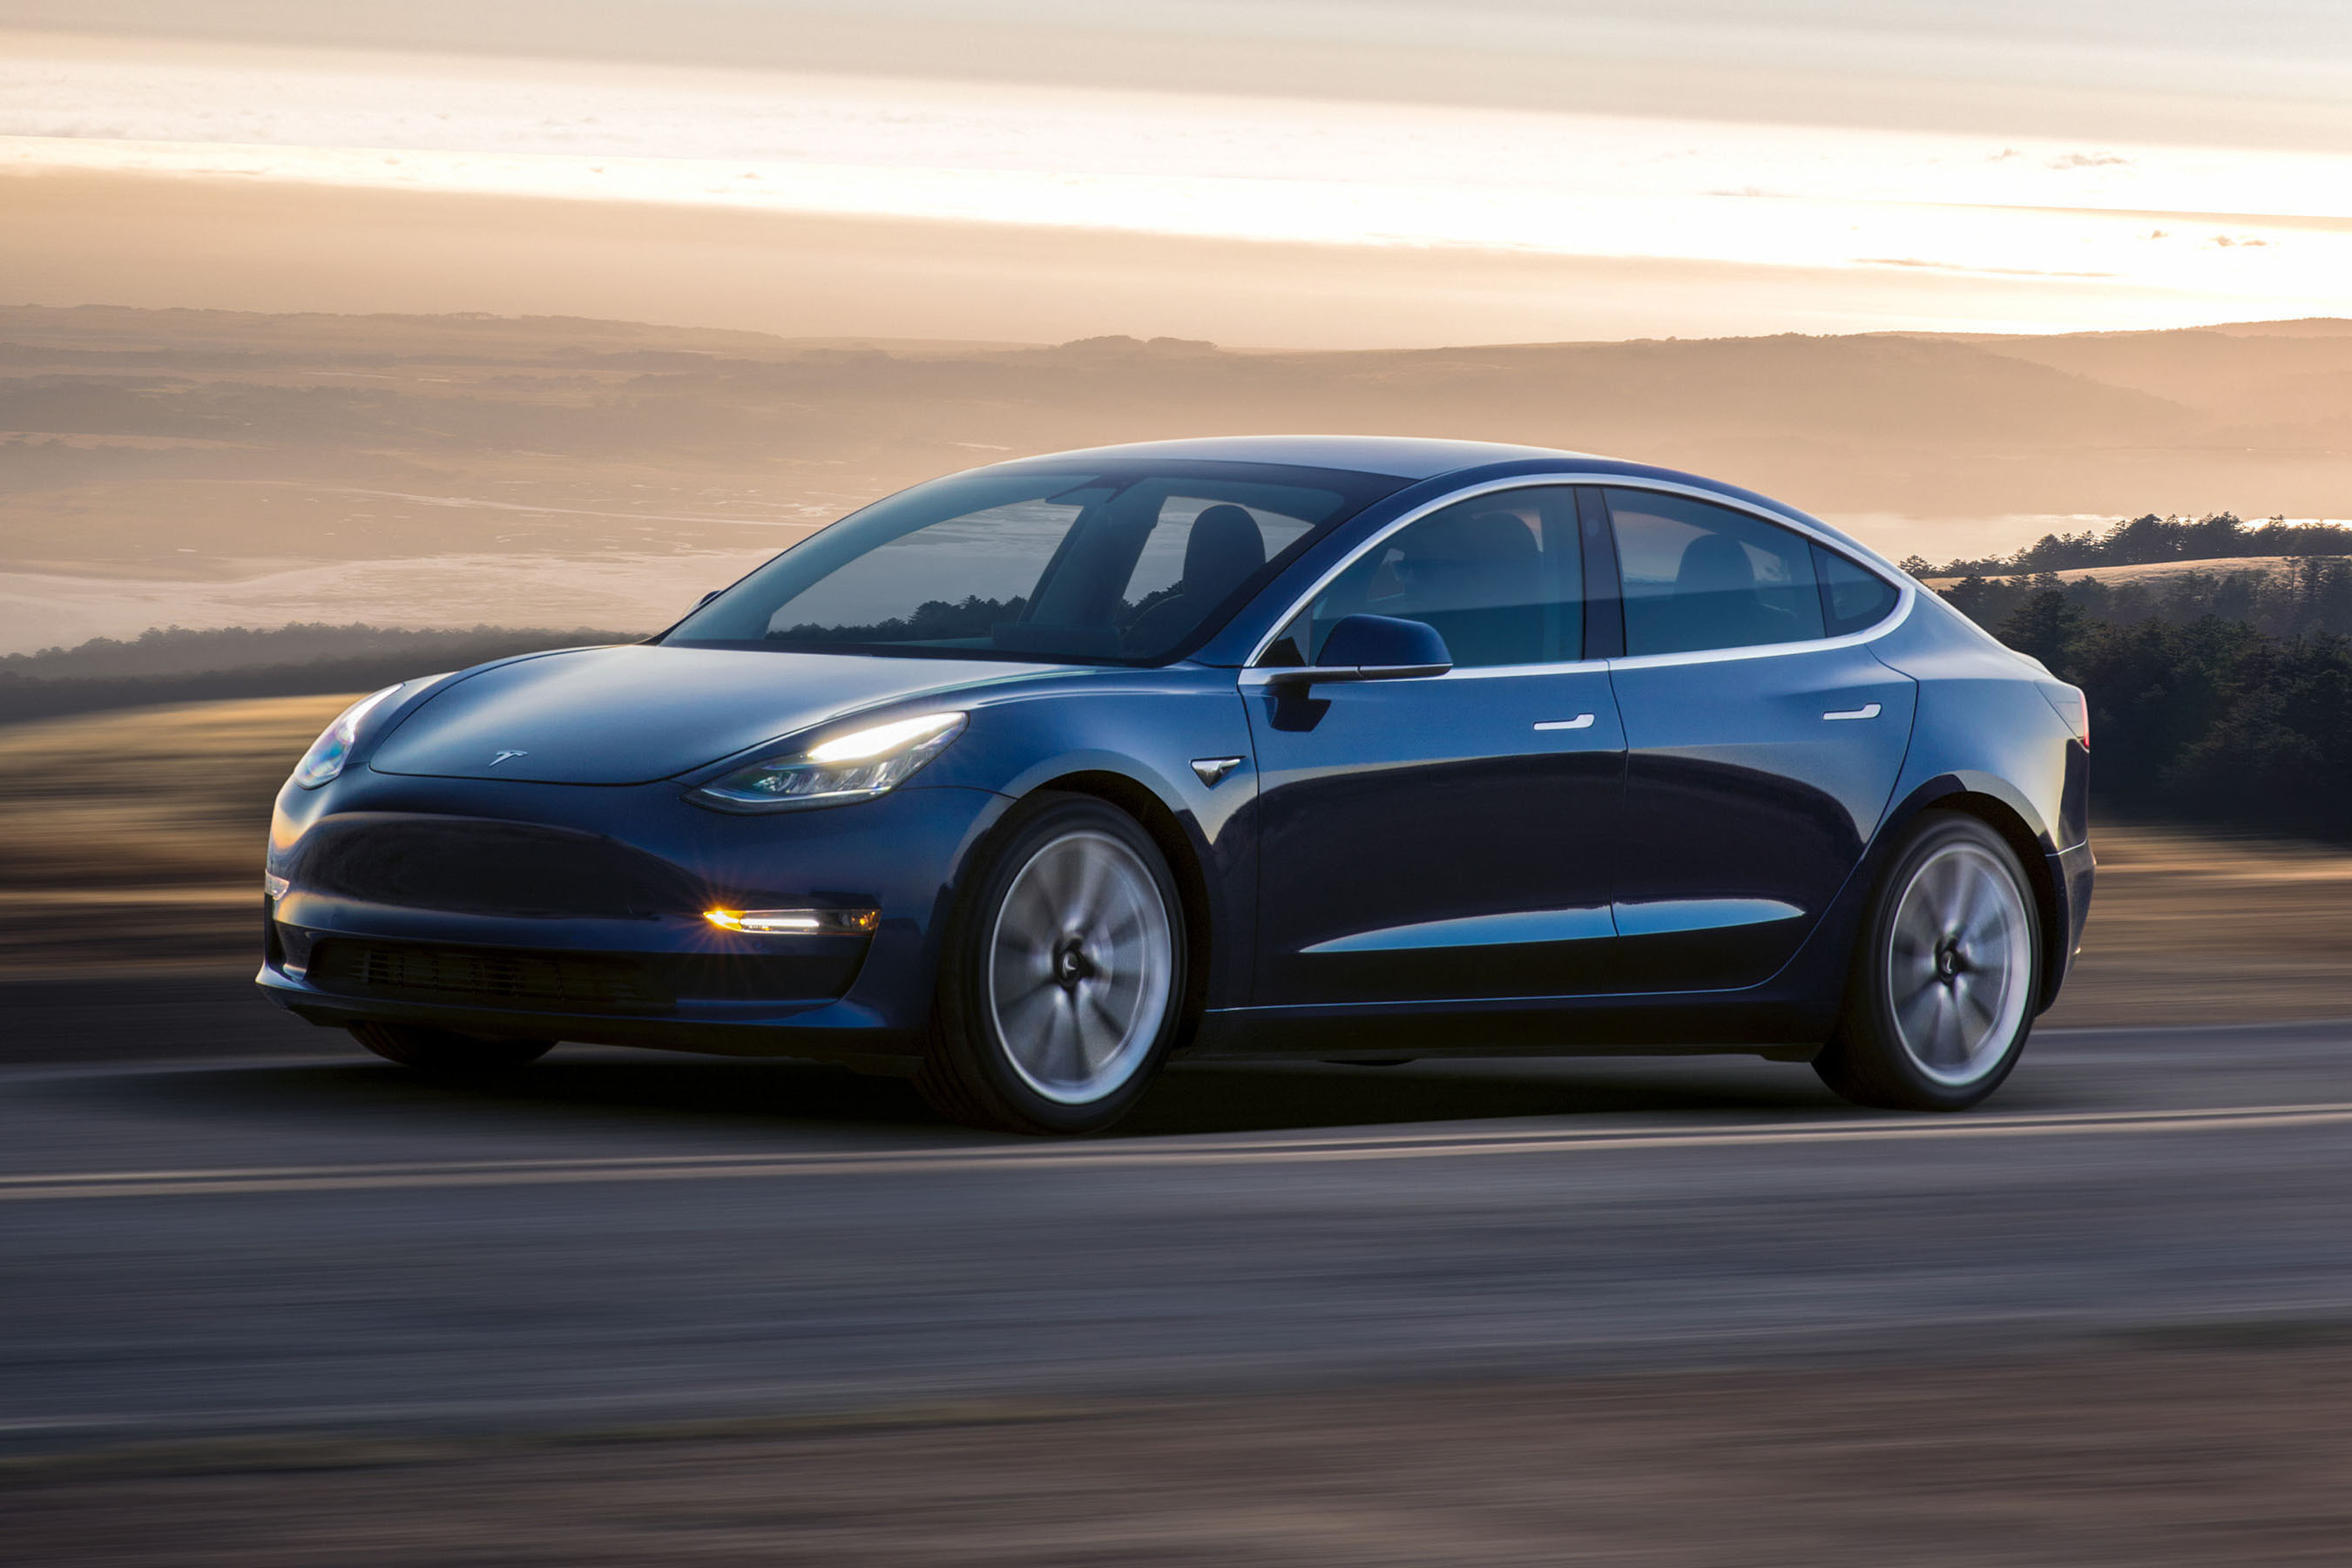 esla positioned the Model 3 as a mass-market car, not a luxury car